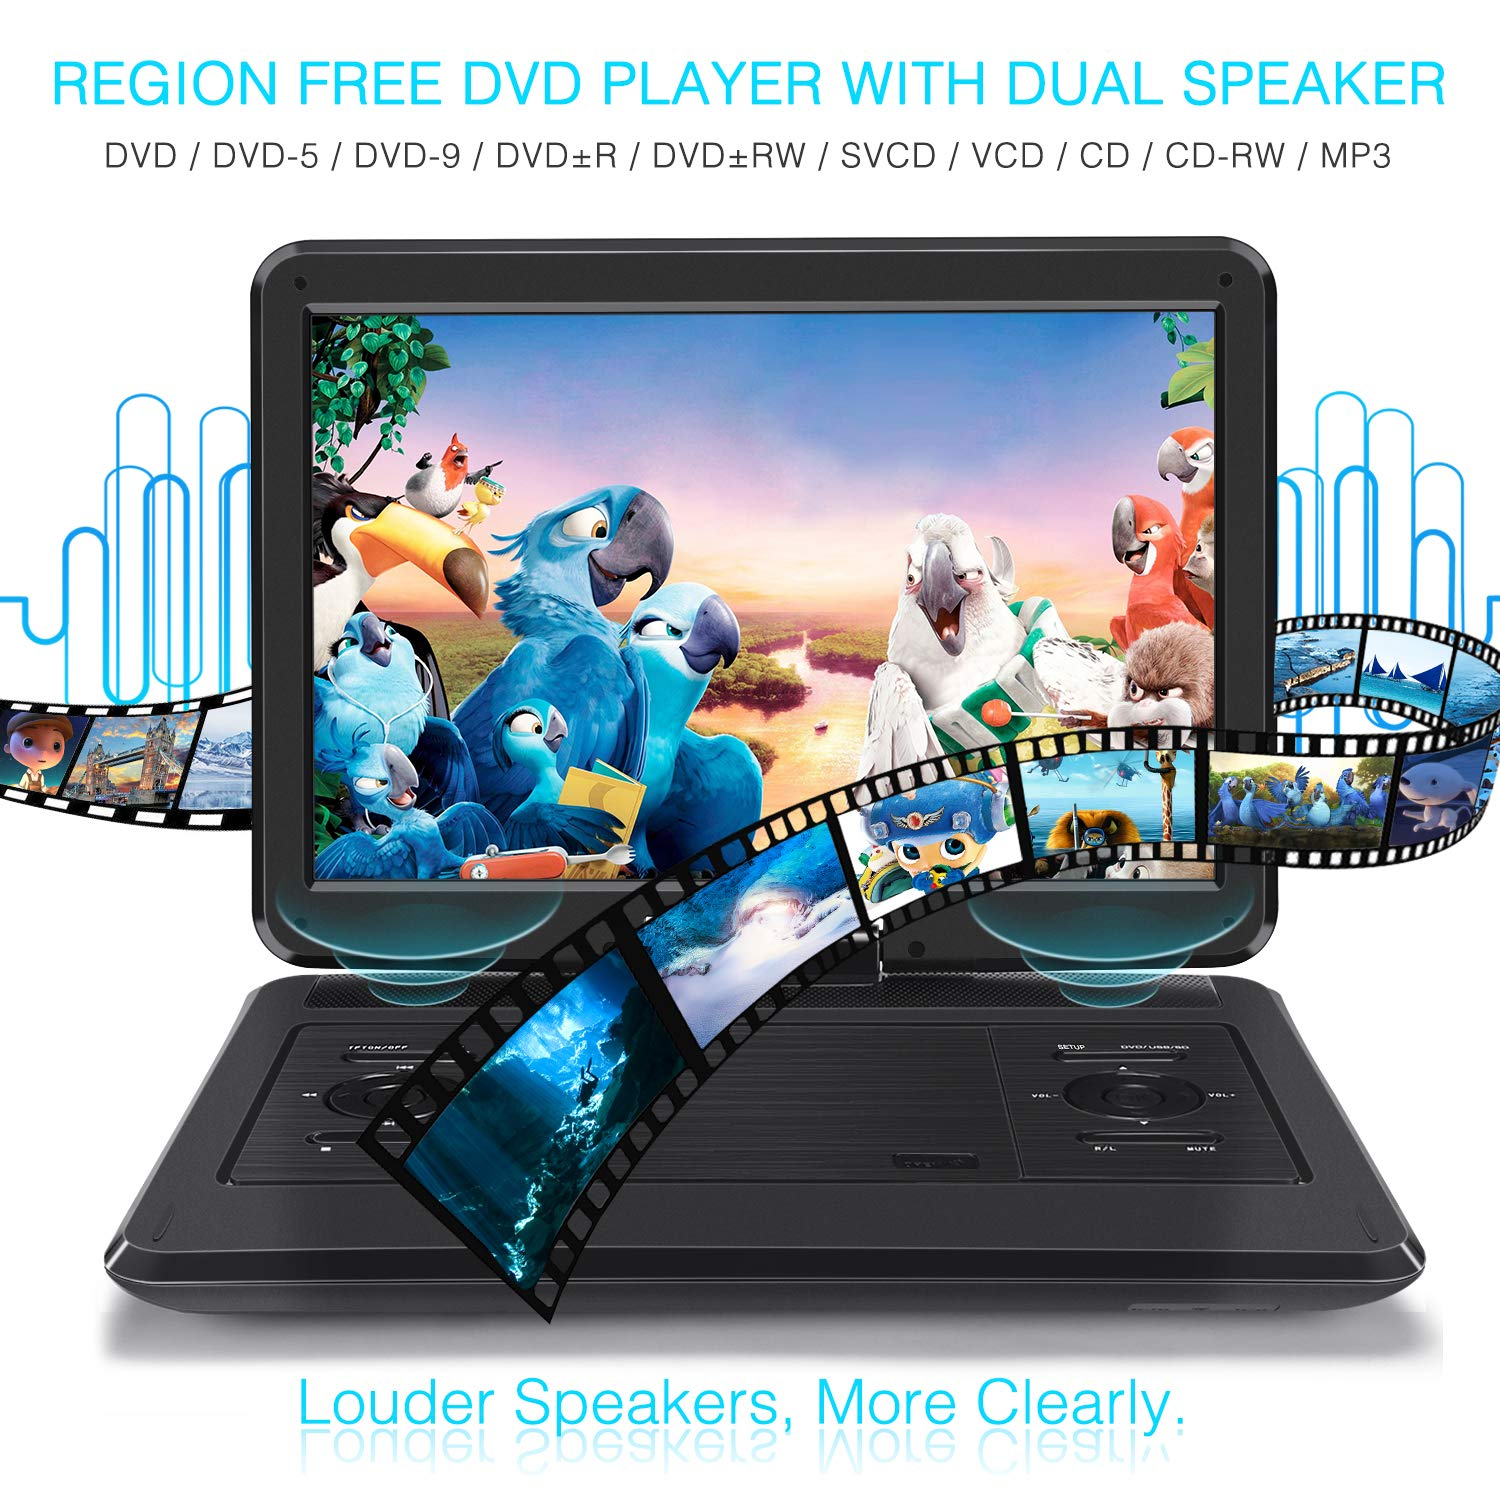 NAVISKAUTO 14'' Portable DVD Player with 6-7 Hours Rechargeable Battery, 270 Degrees Swivel Screen 1366X768, 9.84ft Car Charger/Wall Charger, Support USB/SD Card Playback, Region Free by NAVISKAUTO (Image #4)